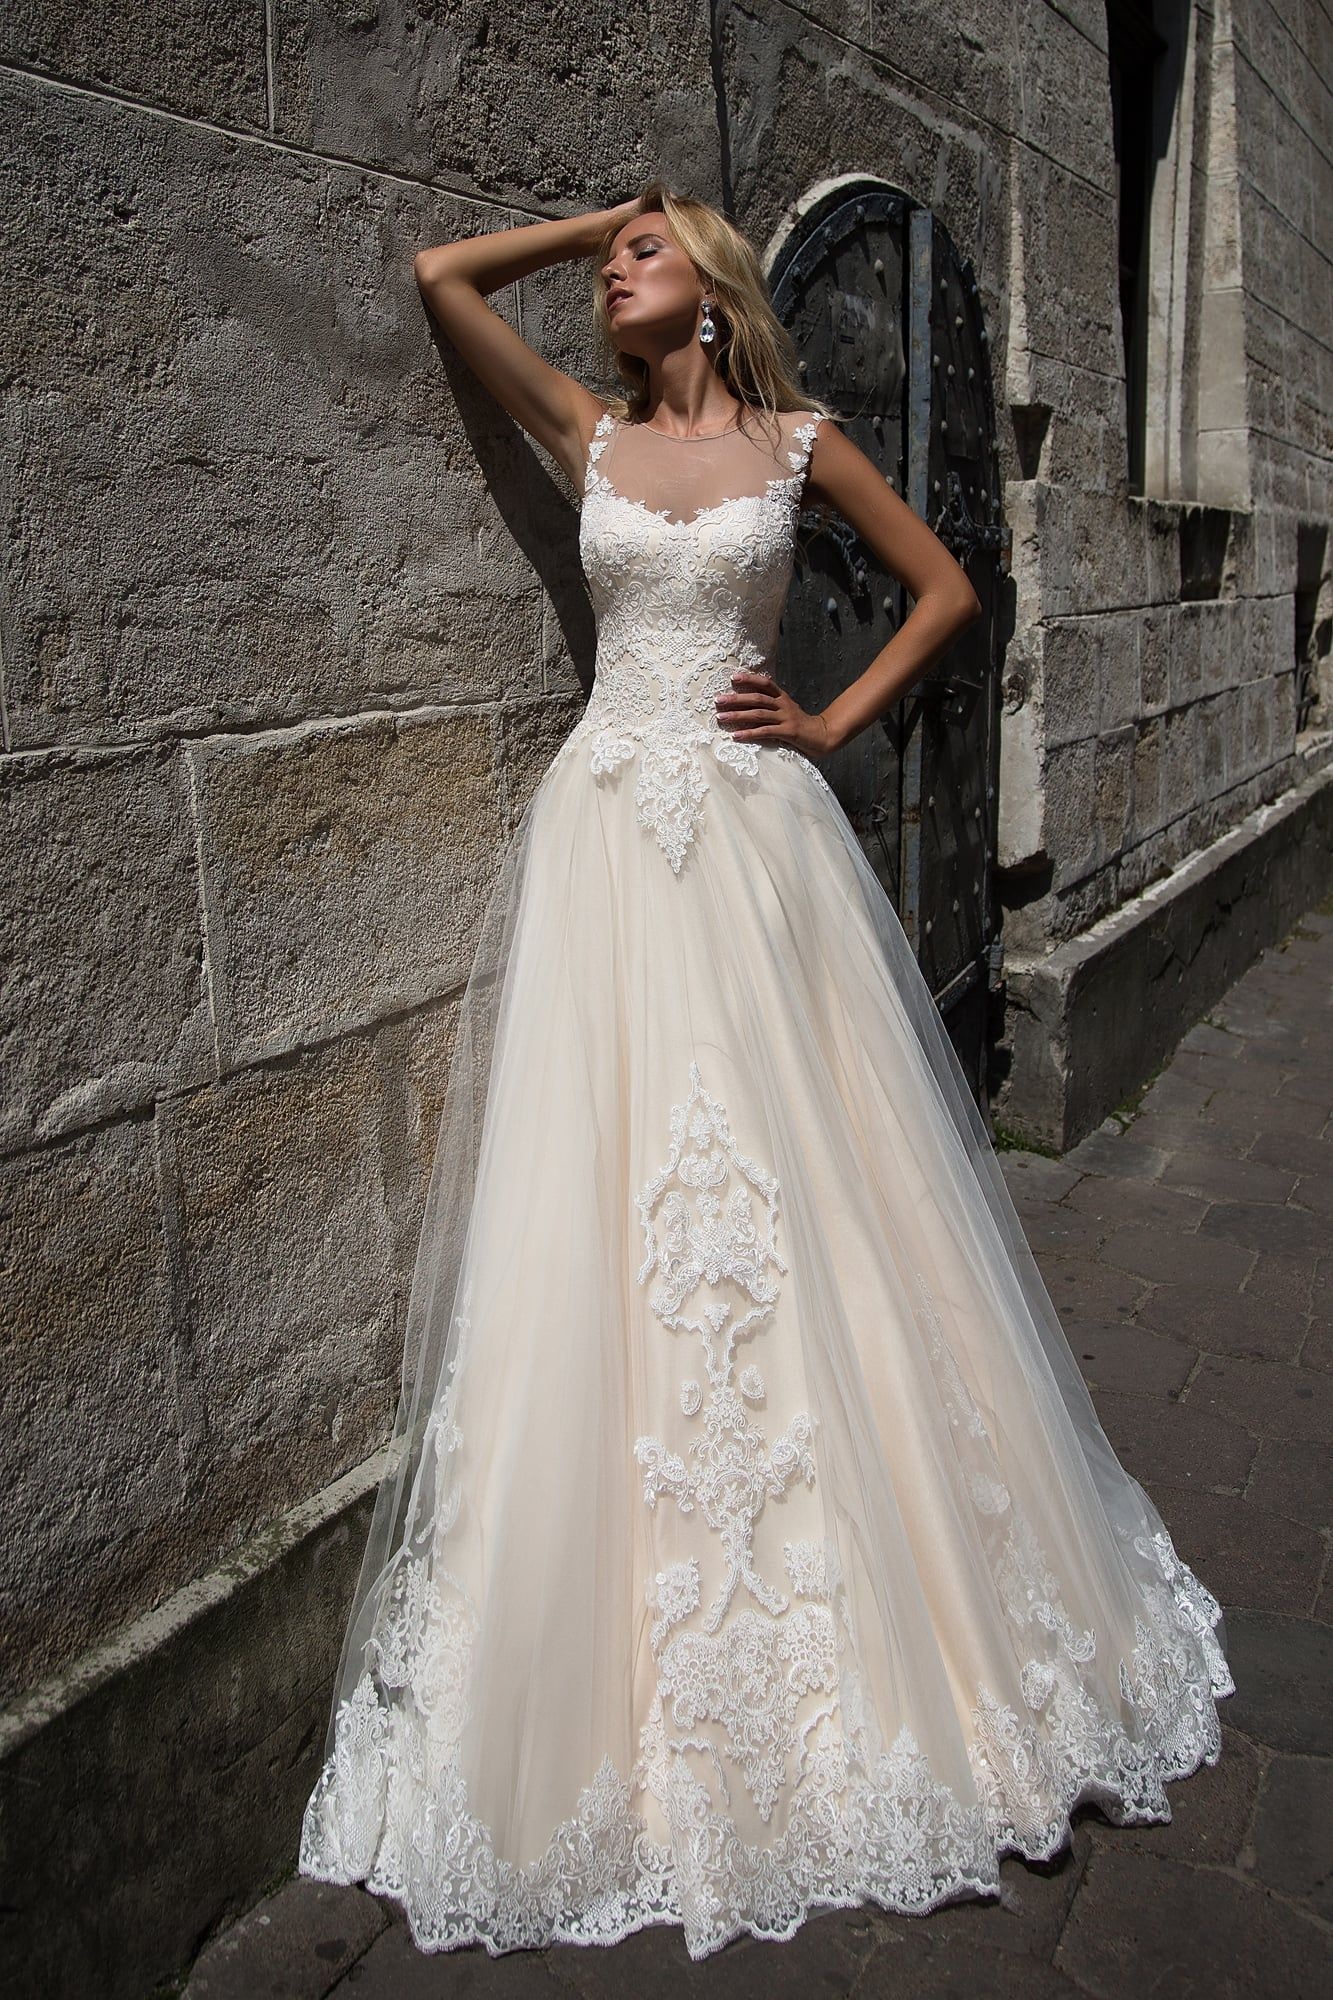 Veronica Wedding Dress By Oksana Mukha Price 1200 00 Only In Charme Gaby Bridal Go Affordable Wedding Dress Designers Beautiful Wedding Dresses Bridal Dresses